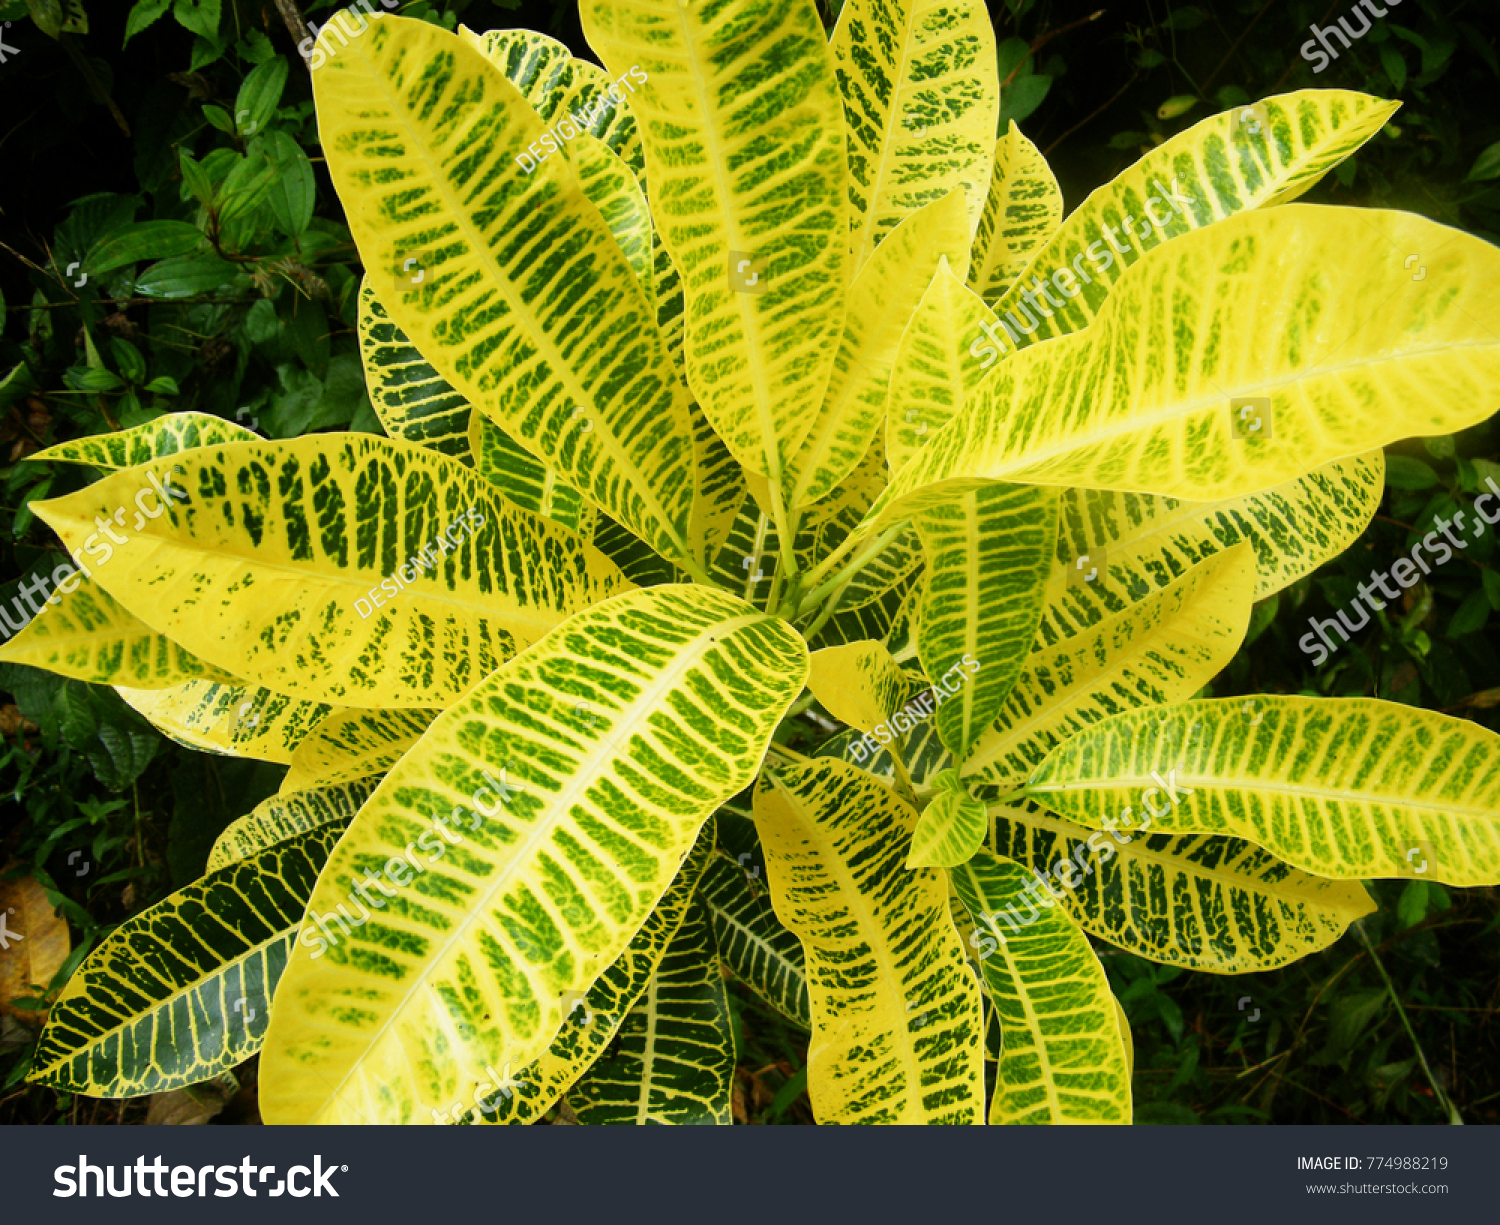 Tropical Yellow Veined Leaves Croton Plant Stock Photo Edit Now 774988219 Yellow leaves, burnt leaves, old leaves, brown leaf tips and other common leaf ailments part !become one of indoor plants care,plant care,garden plants,aquatic plants,house plants,exotic plants,tropical plants,how to care plants and flowers, landscape plants. https www shutterstock com image photo tropical yellow veined leaves croton plant 774988219